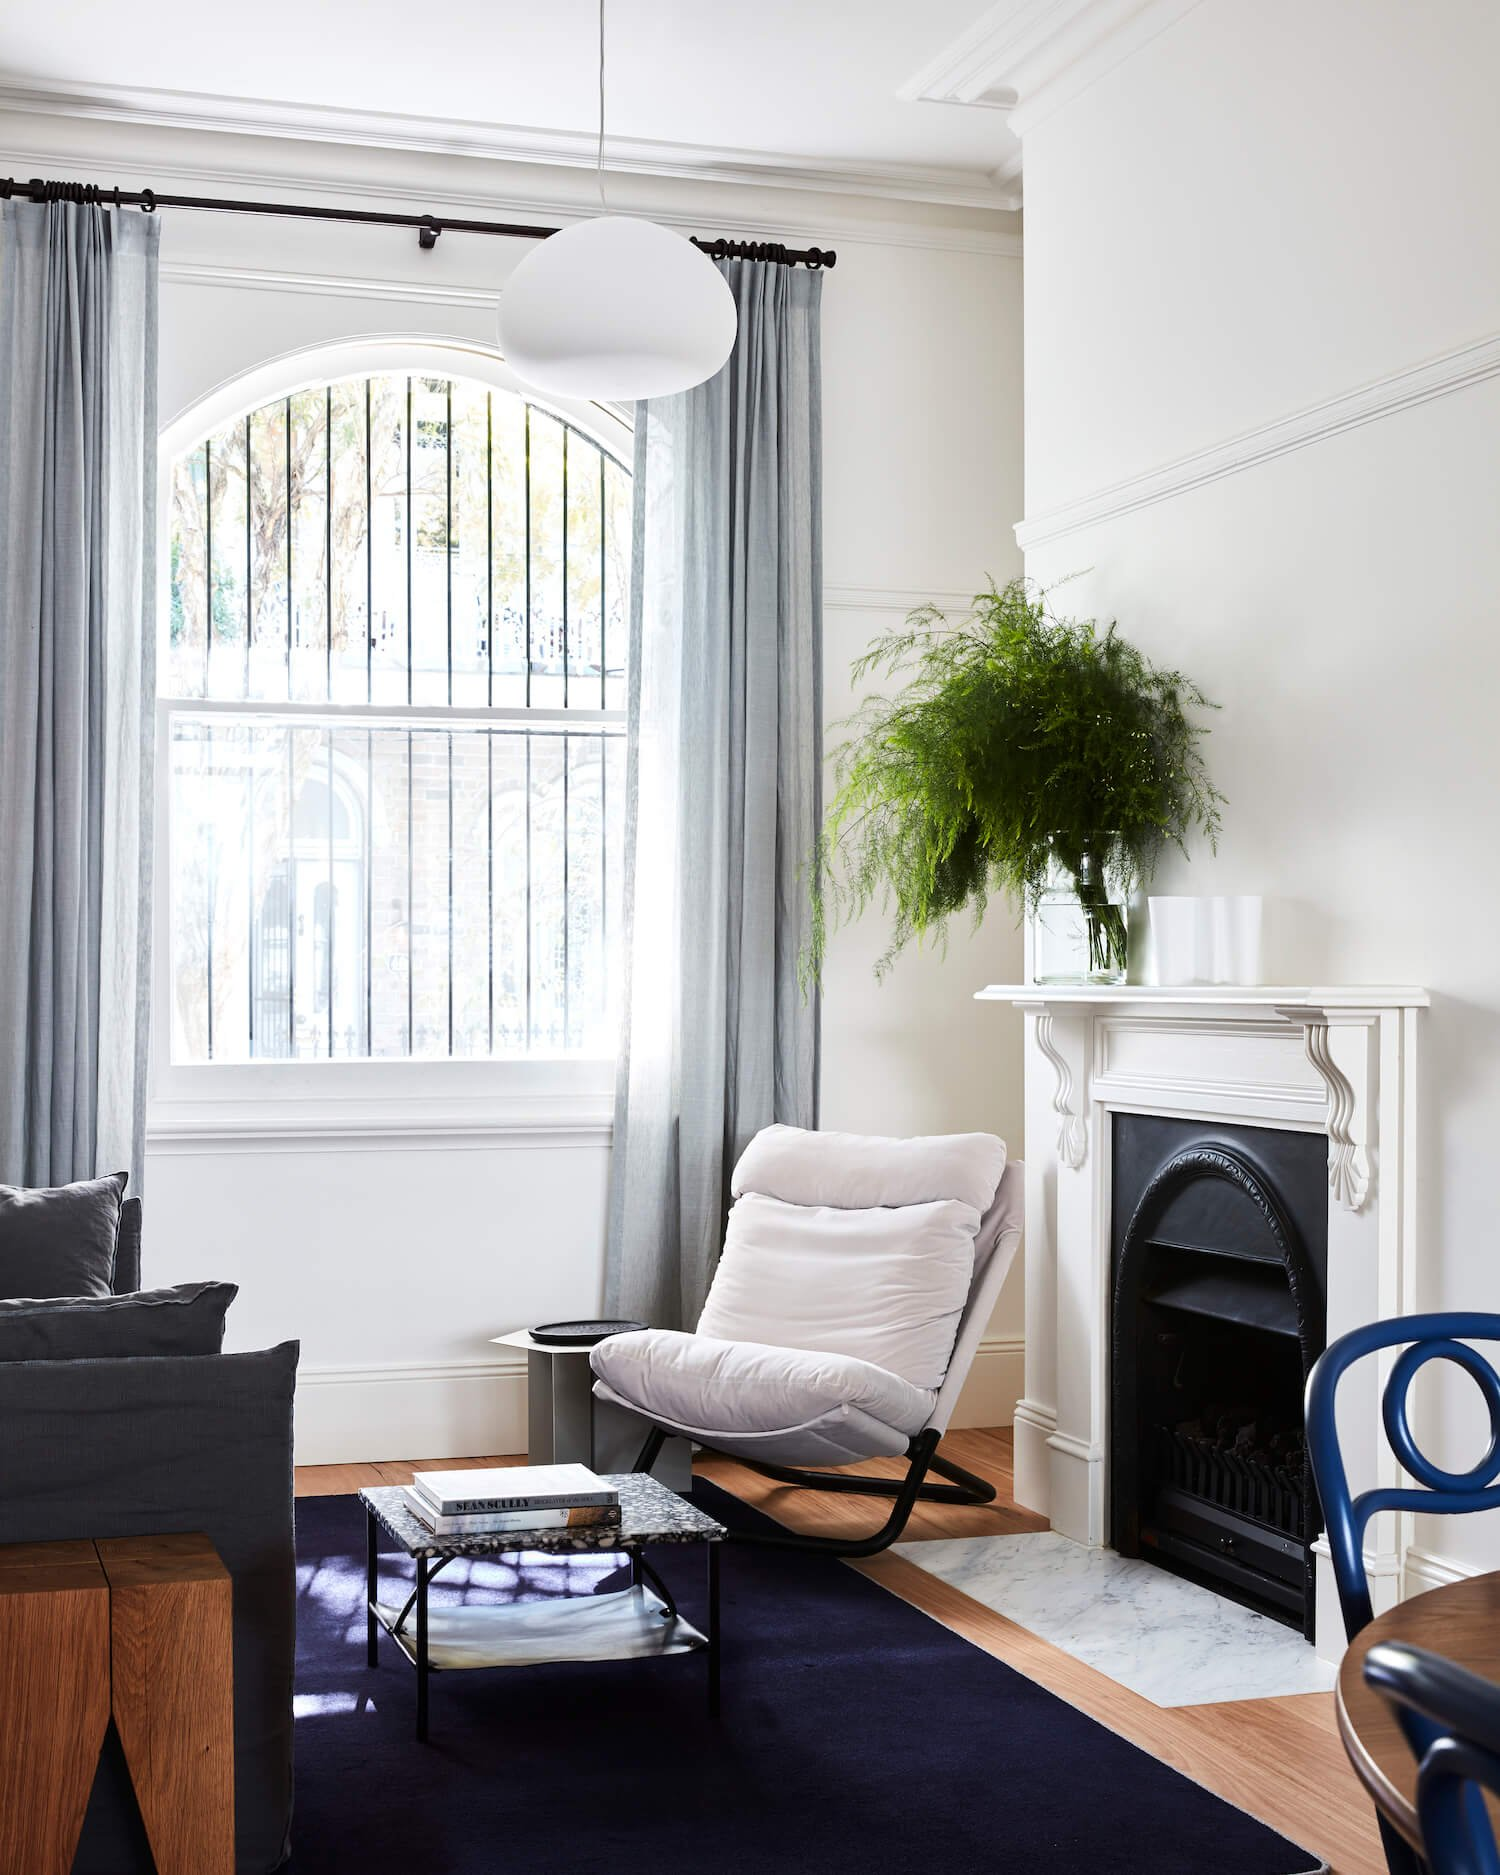 est living australian interiors surry hills fiona lynch 1 e1534725072181